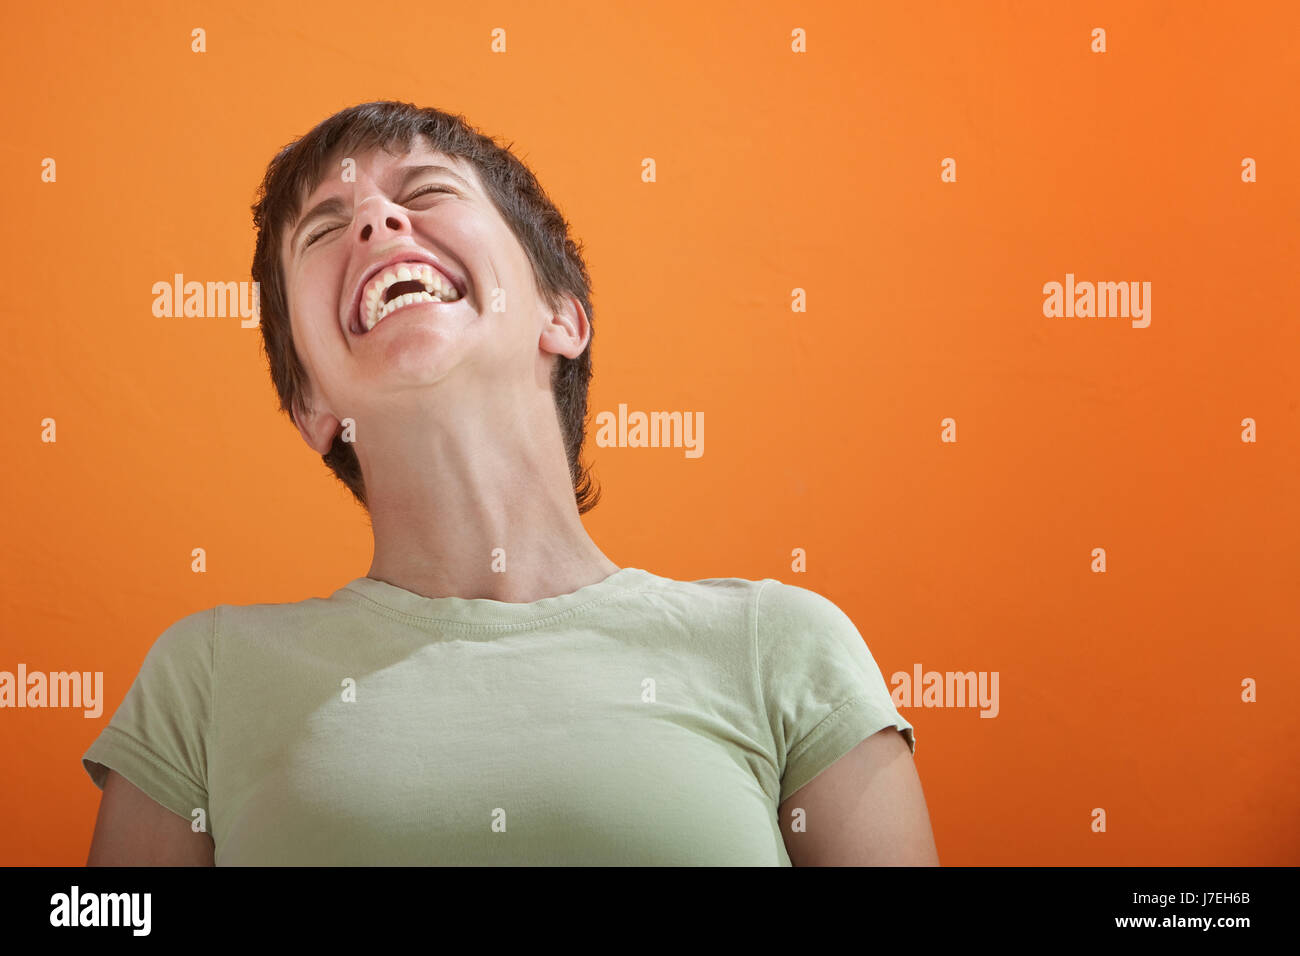 single game tournament play playing plays played feminine female one young - Stock Image